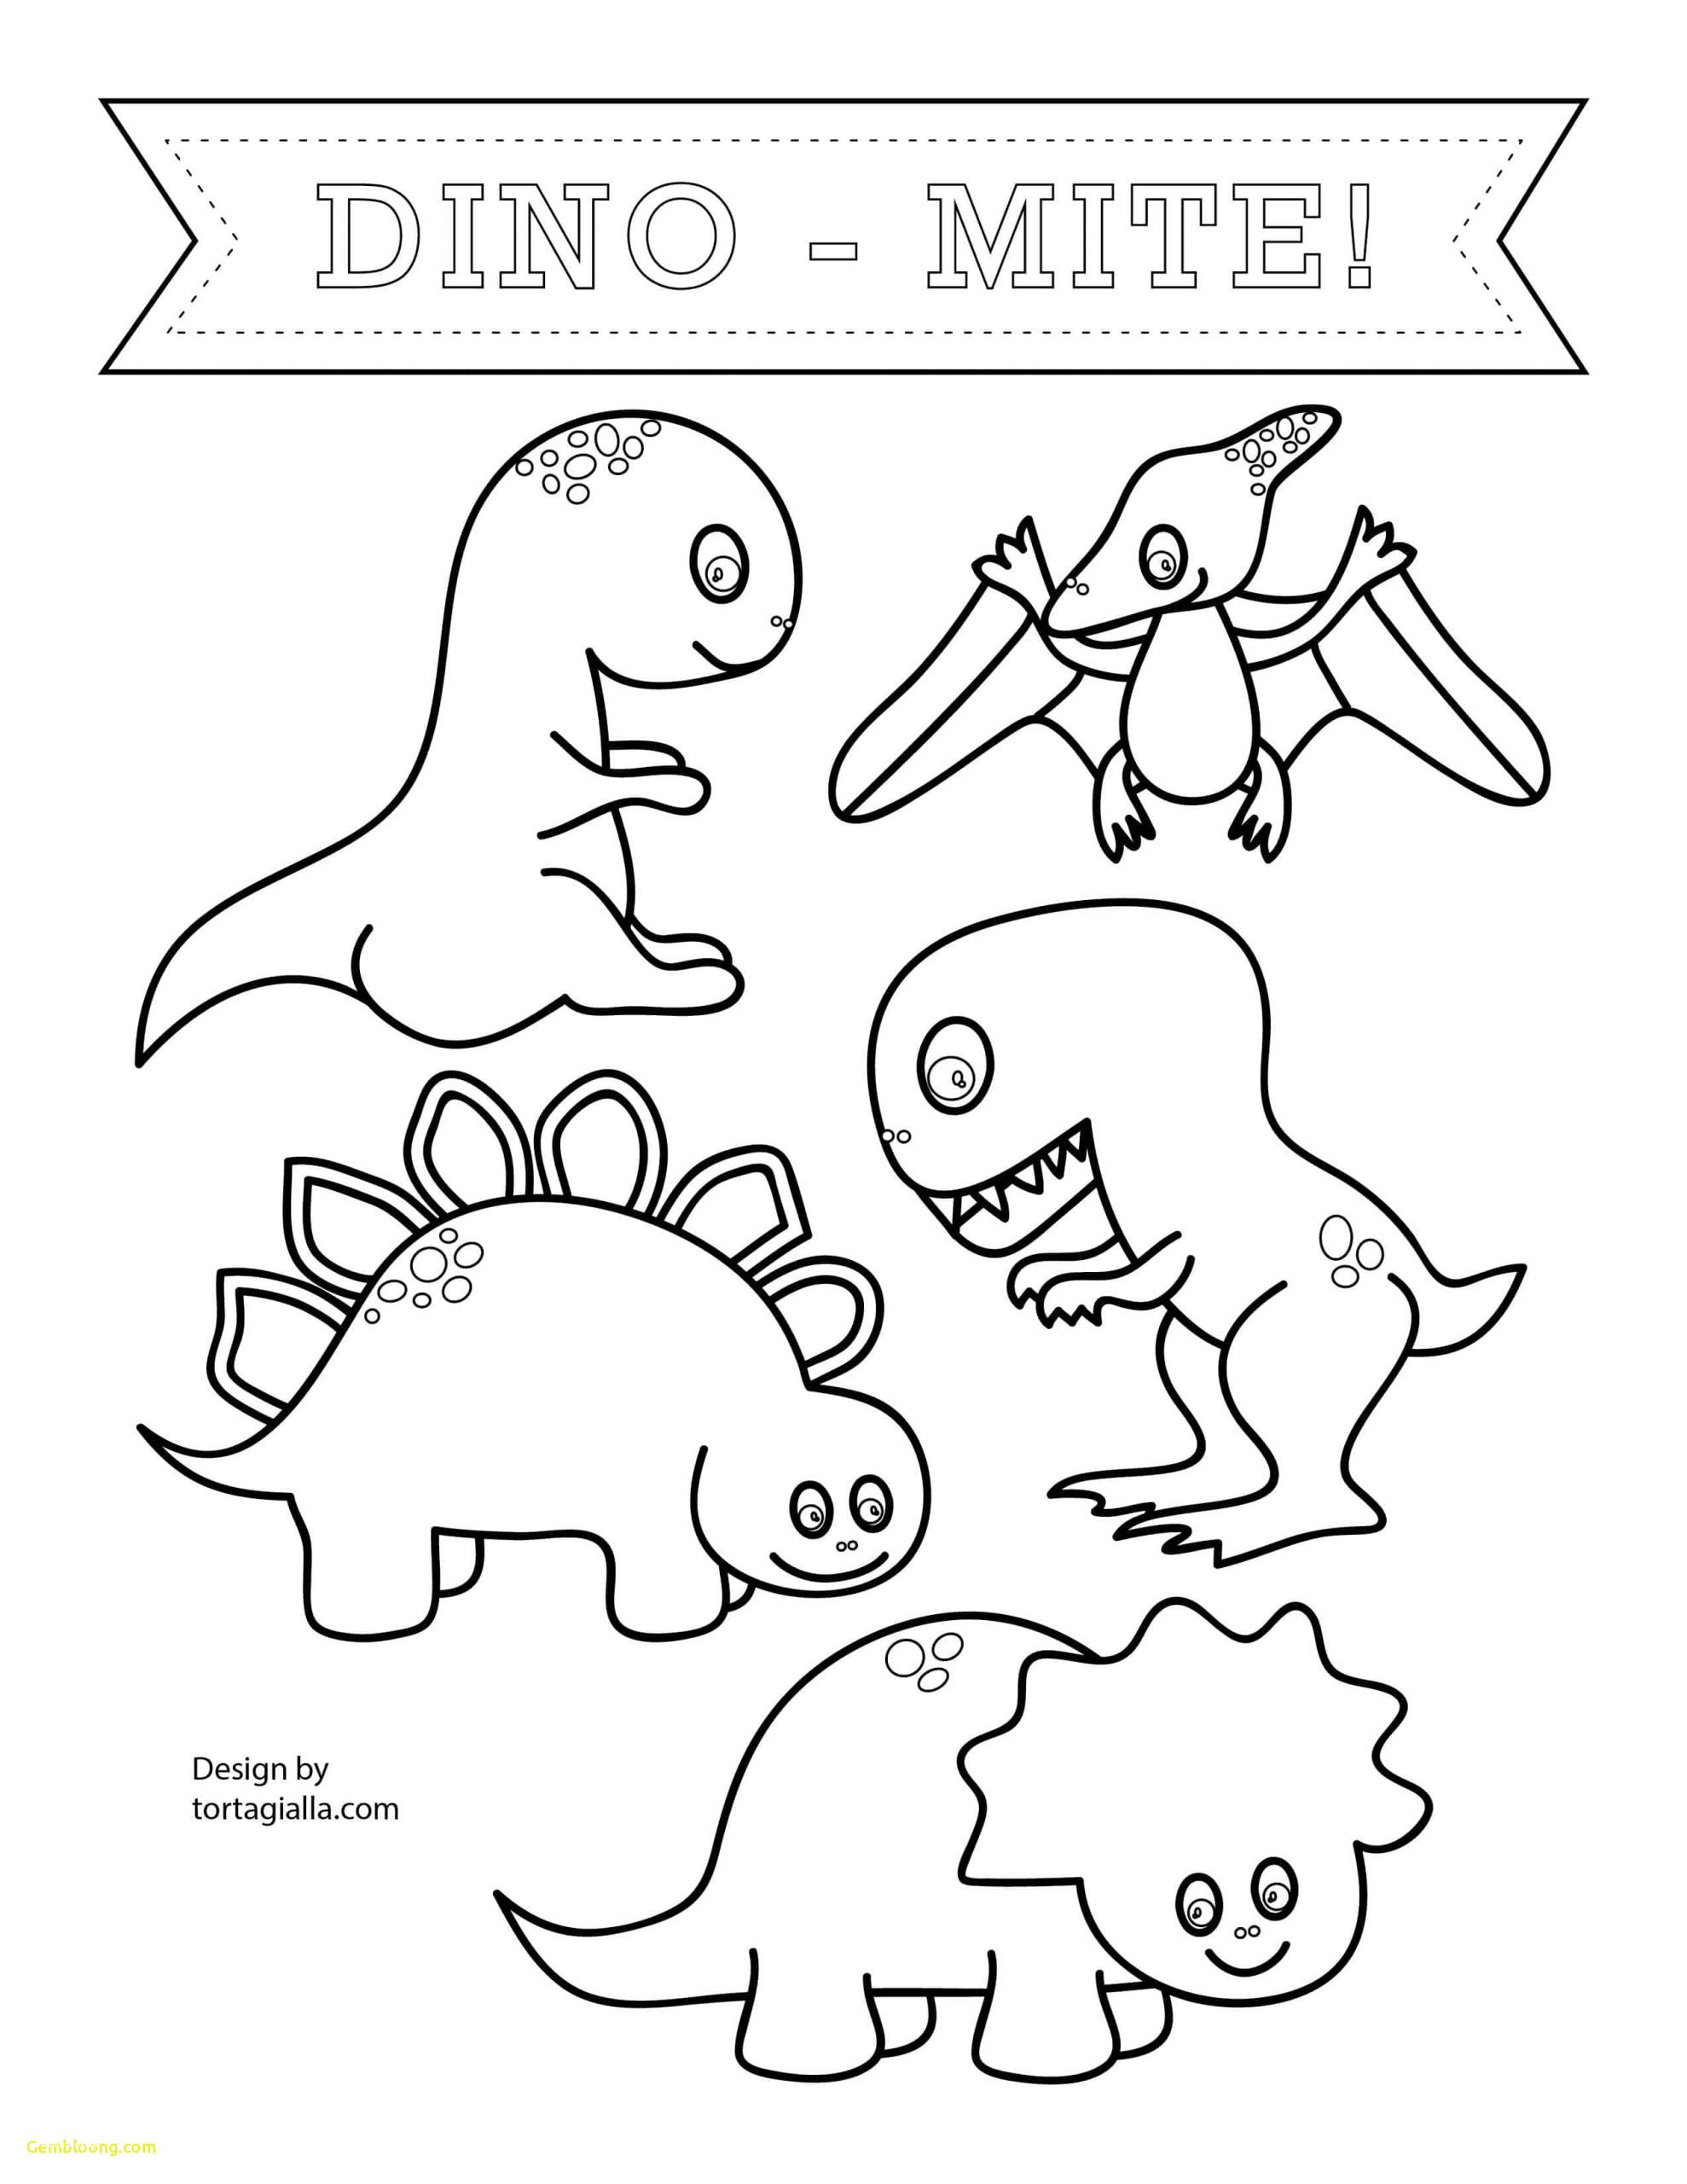 Dinosaur Worksheets for Preschoolers Coloring Pages Dinosaur Colouring Book Printable Beautiful